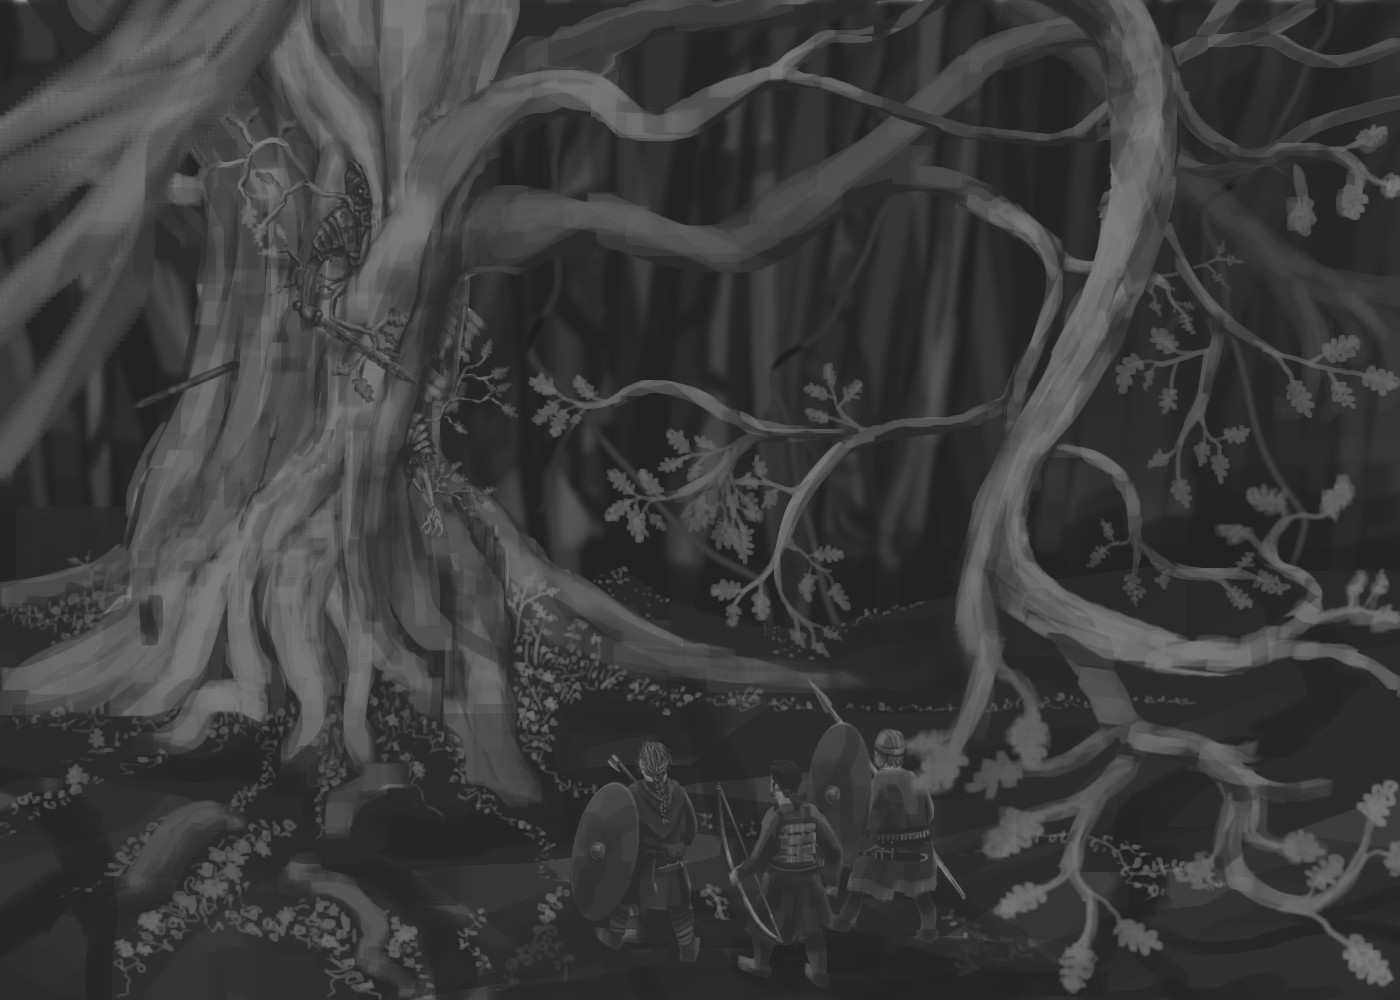 underpainting ( https://www.artstation.com/artwork/QO9Yl )